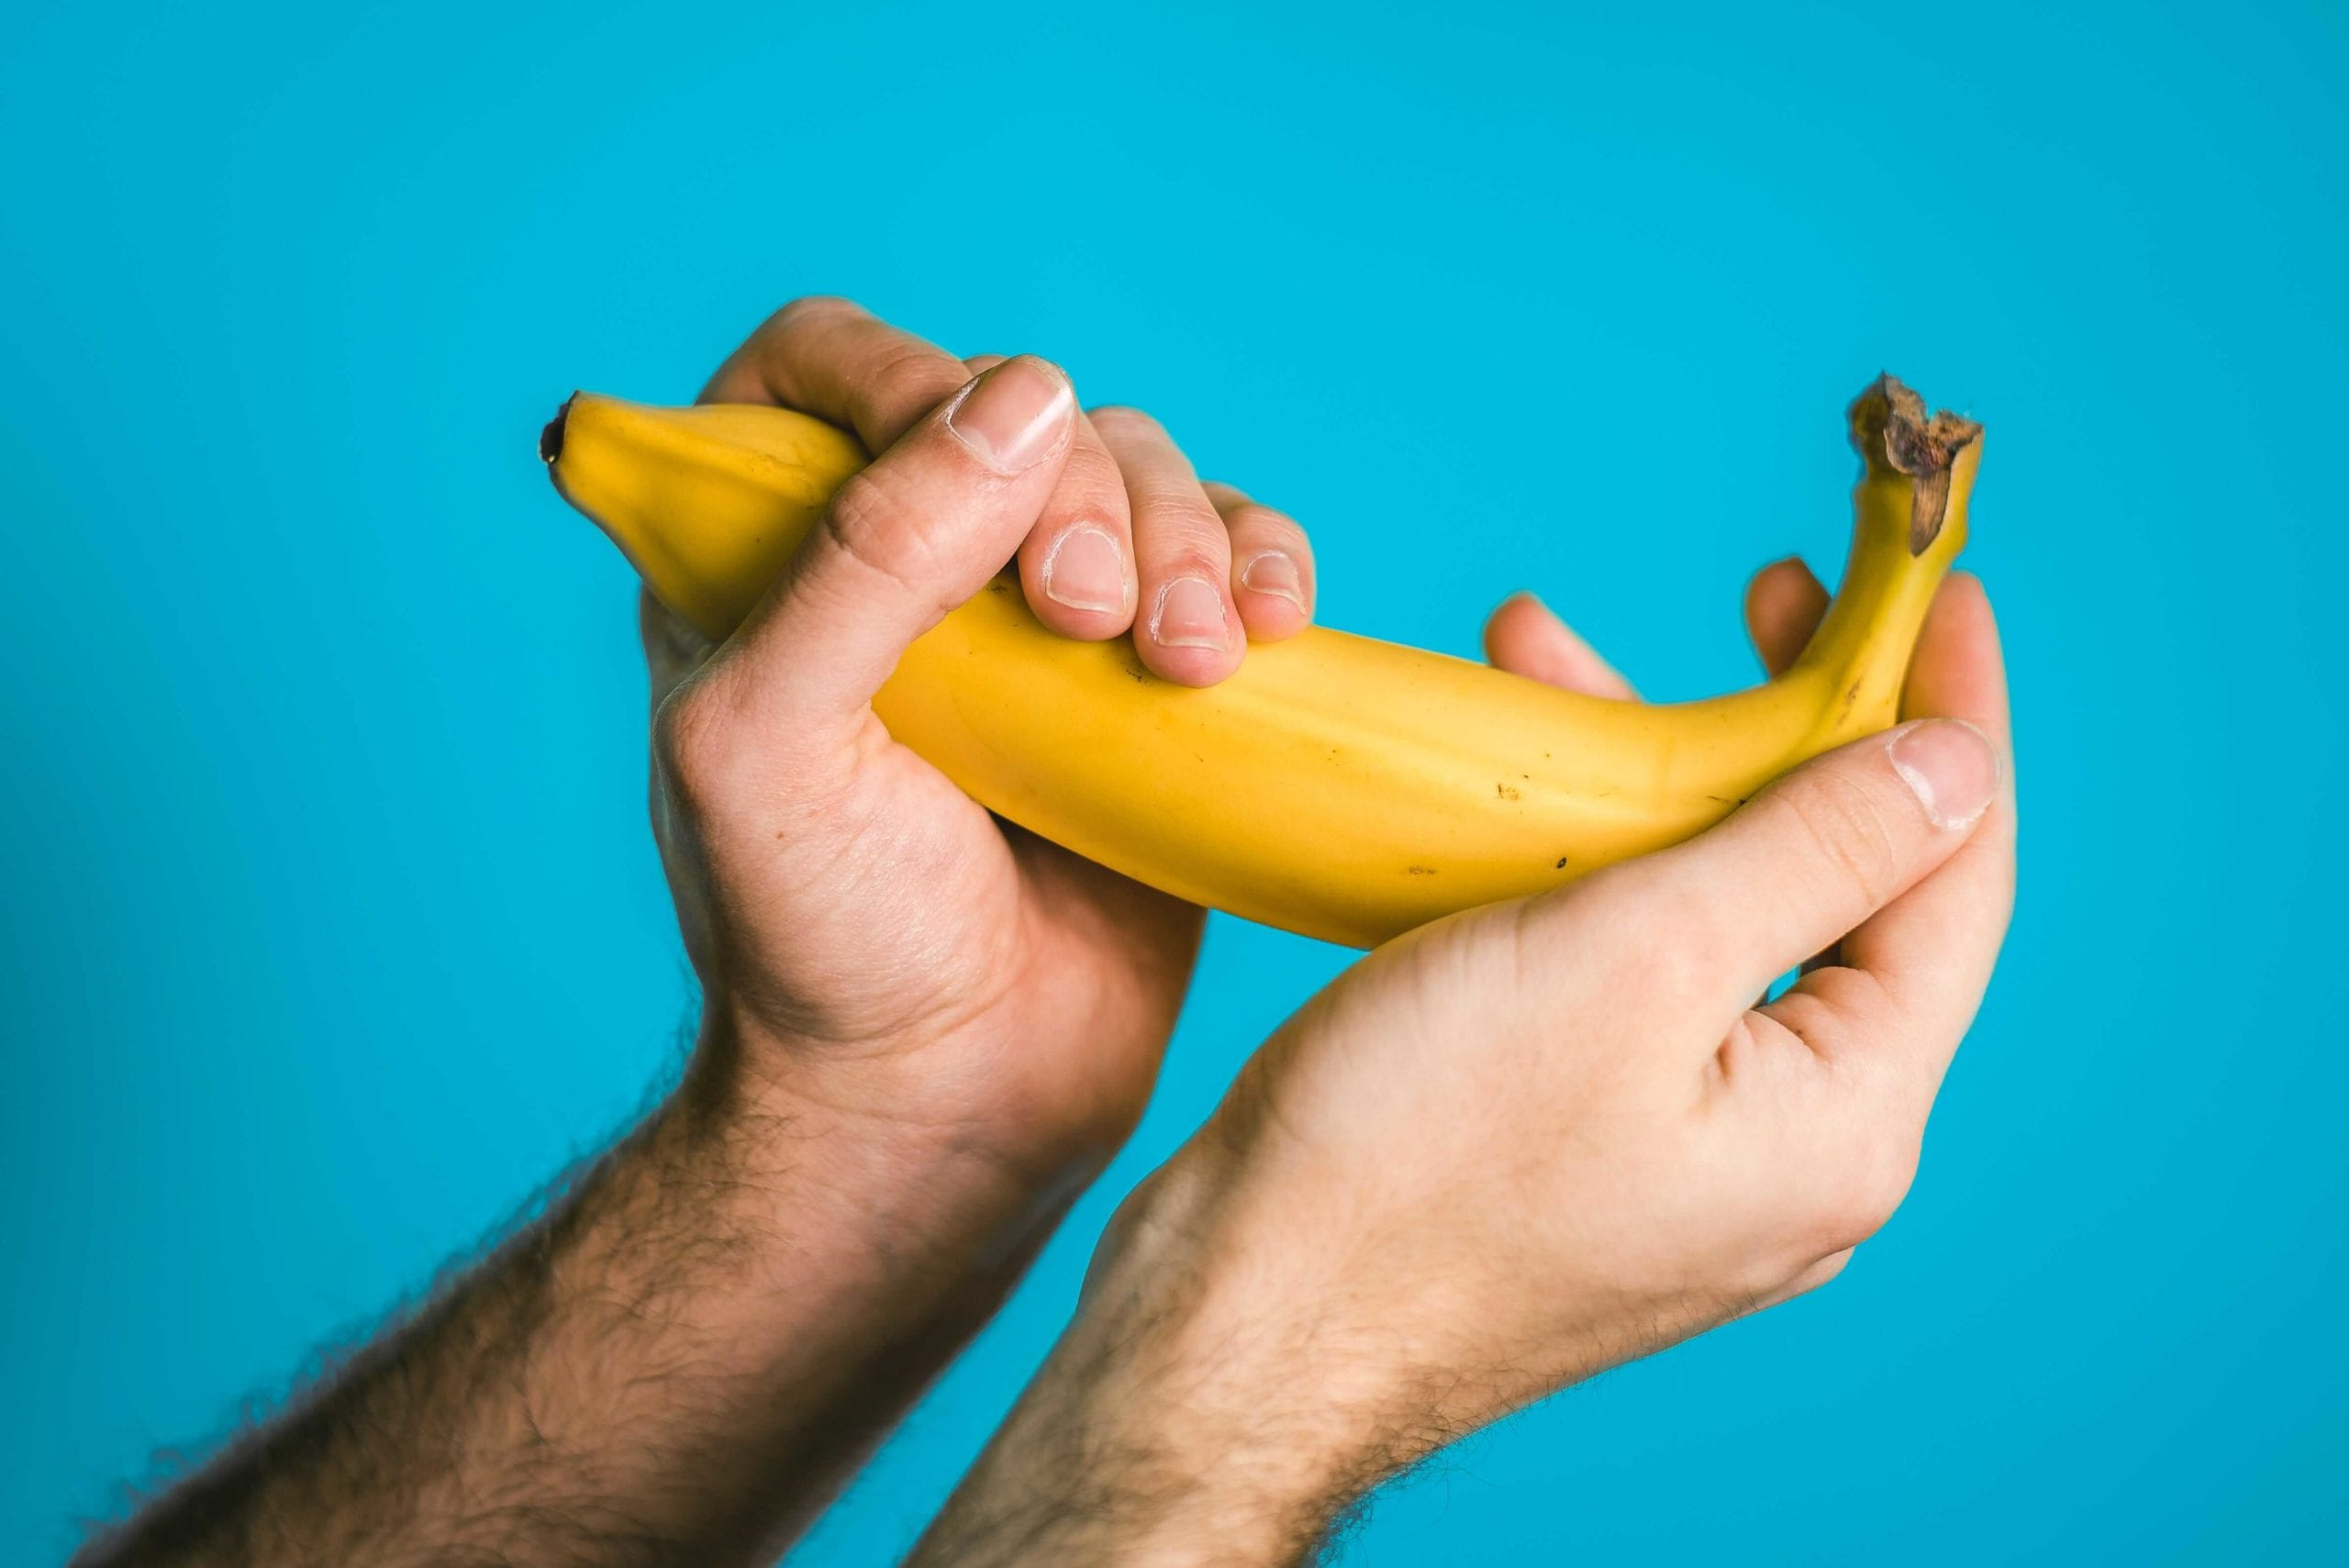 Man's hands holding a banana, shaped like a penis, depicting erectile dysfunction.